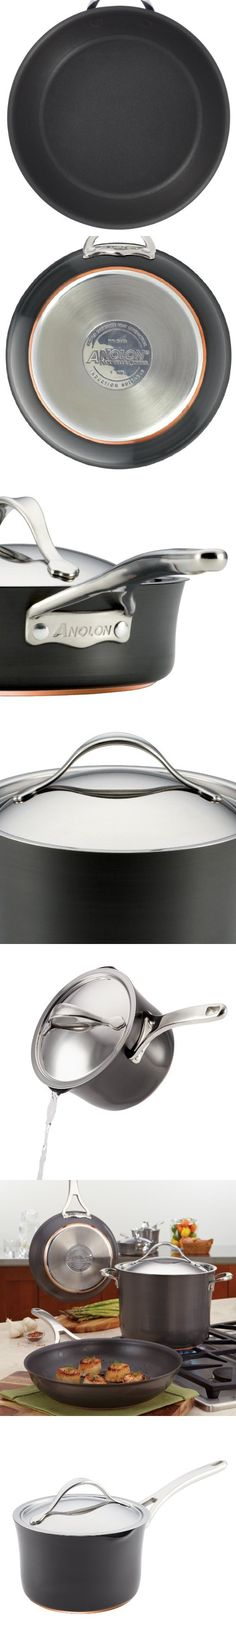 Anolon 83527  Nouvelle Copper Hard Anodized Nonstick Covered Straining Saucepan, 3.5-Quart